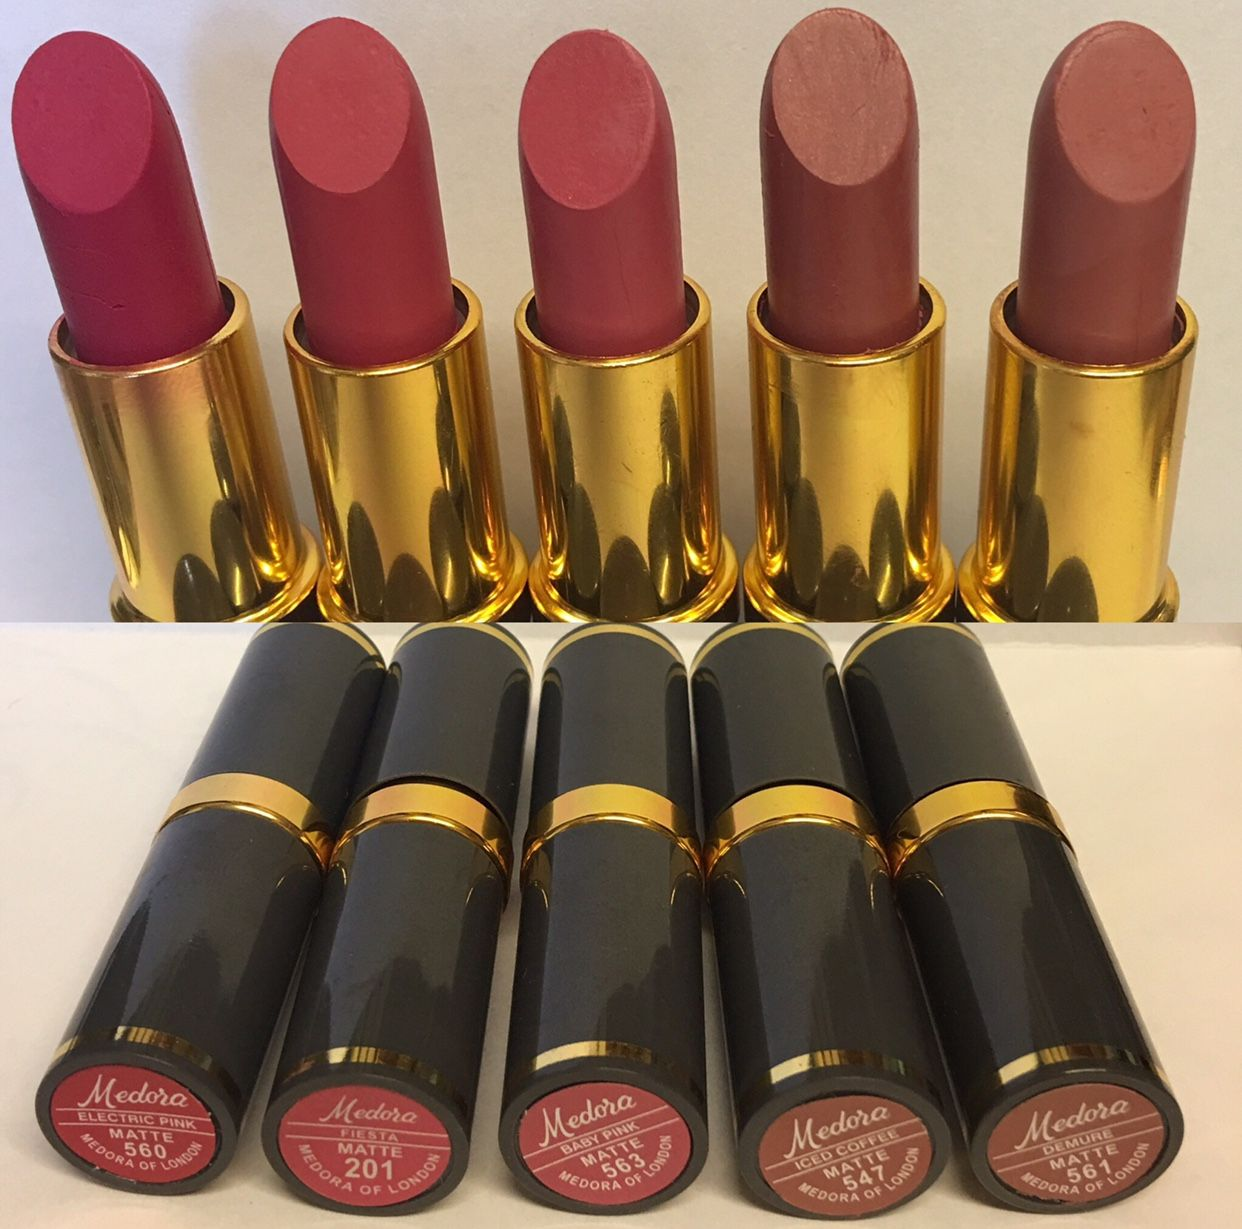 Medora Lipstick Image By Lowry On Best Products Lipstick